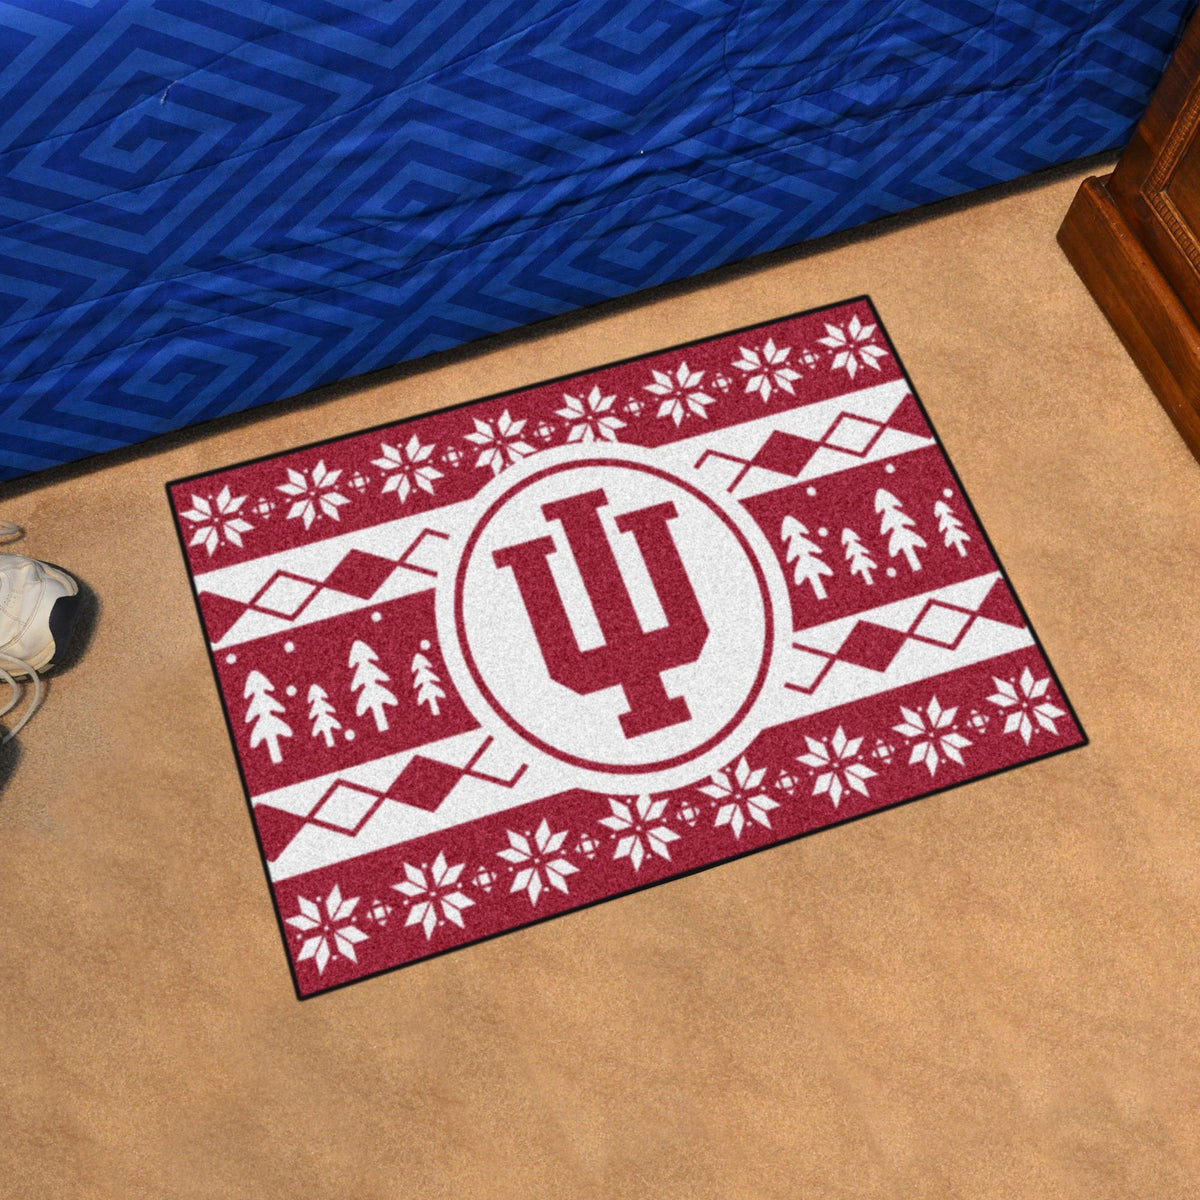 Collegiate - Holiday Sweater Starter Mat Collegiate Mats, Rectangular Mats, Holiday Sweater Starter Mat, Collegiate, Home Fan Mats Indiana